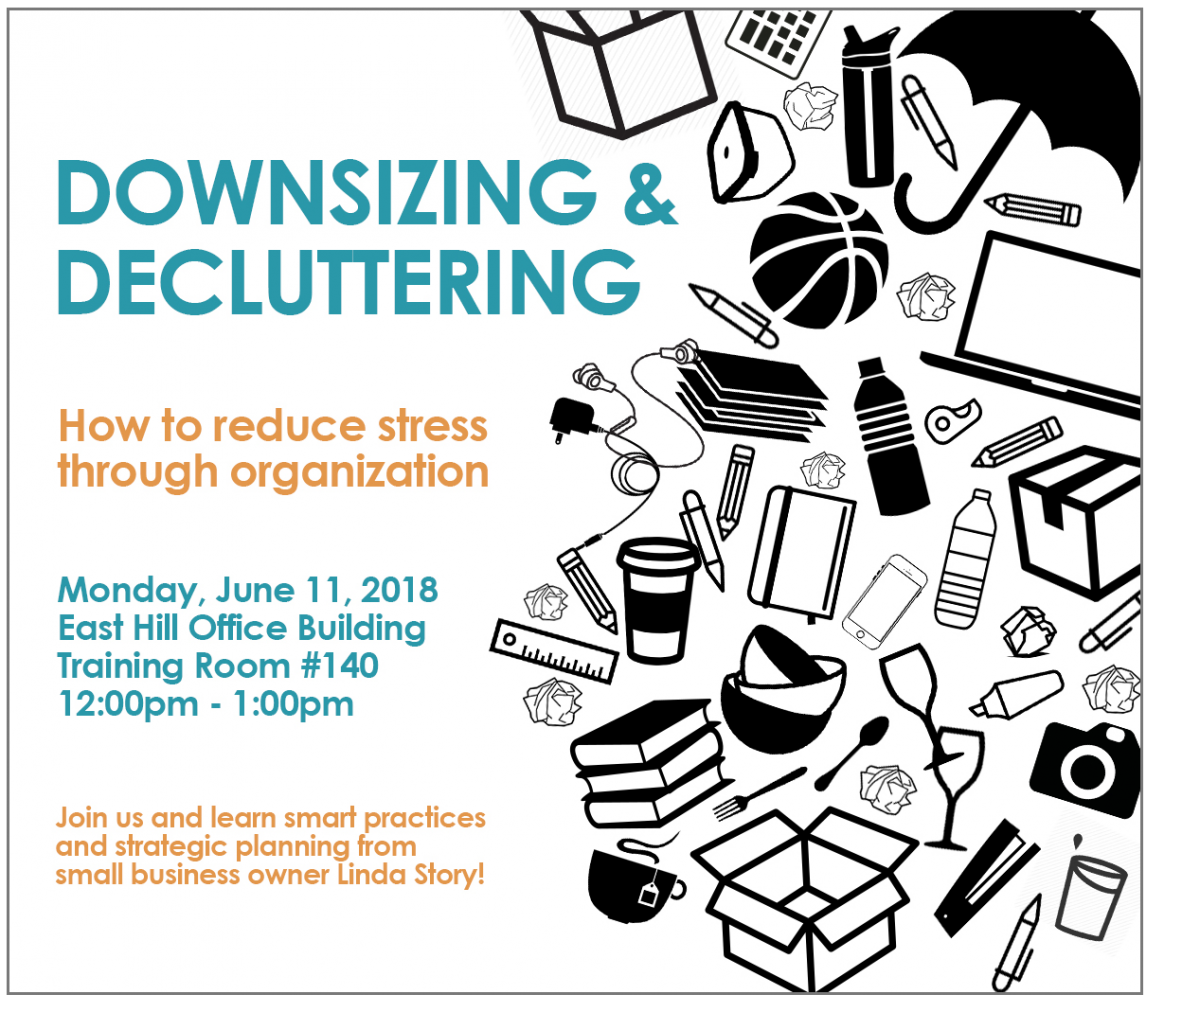 decluttering flyer with graphics of strewn items